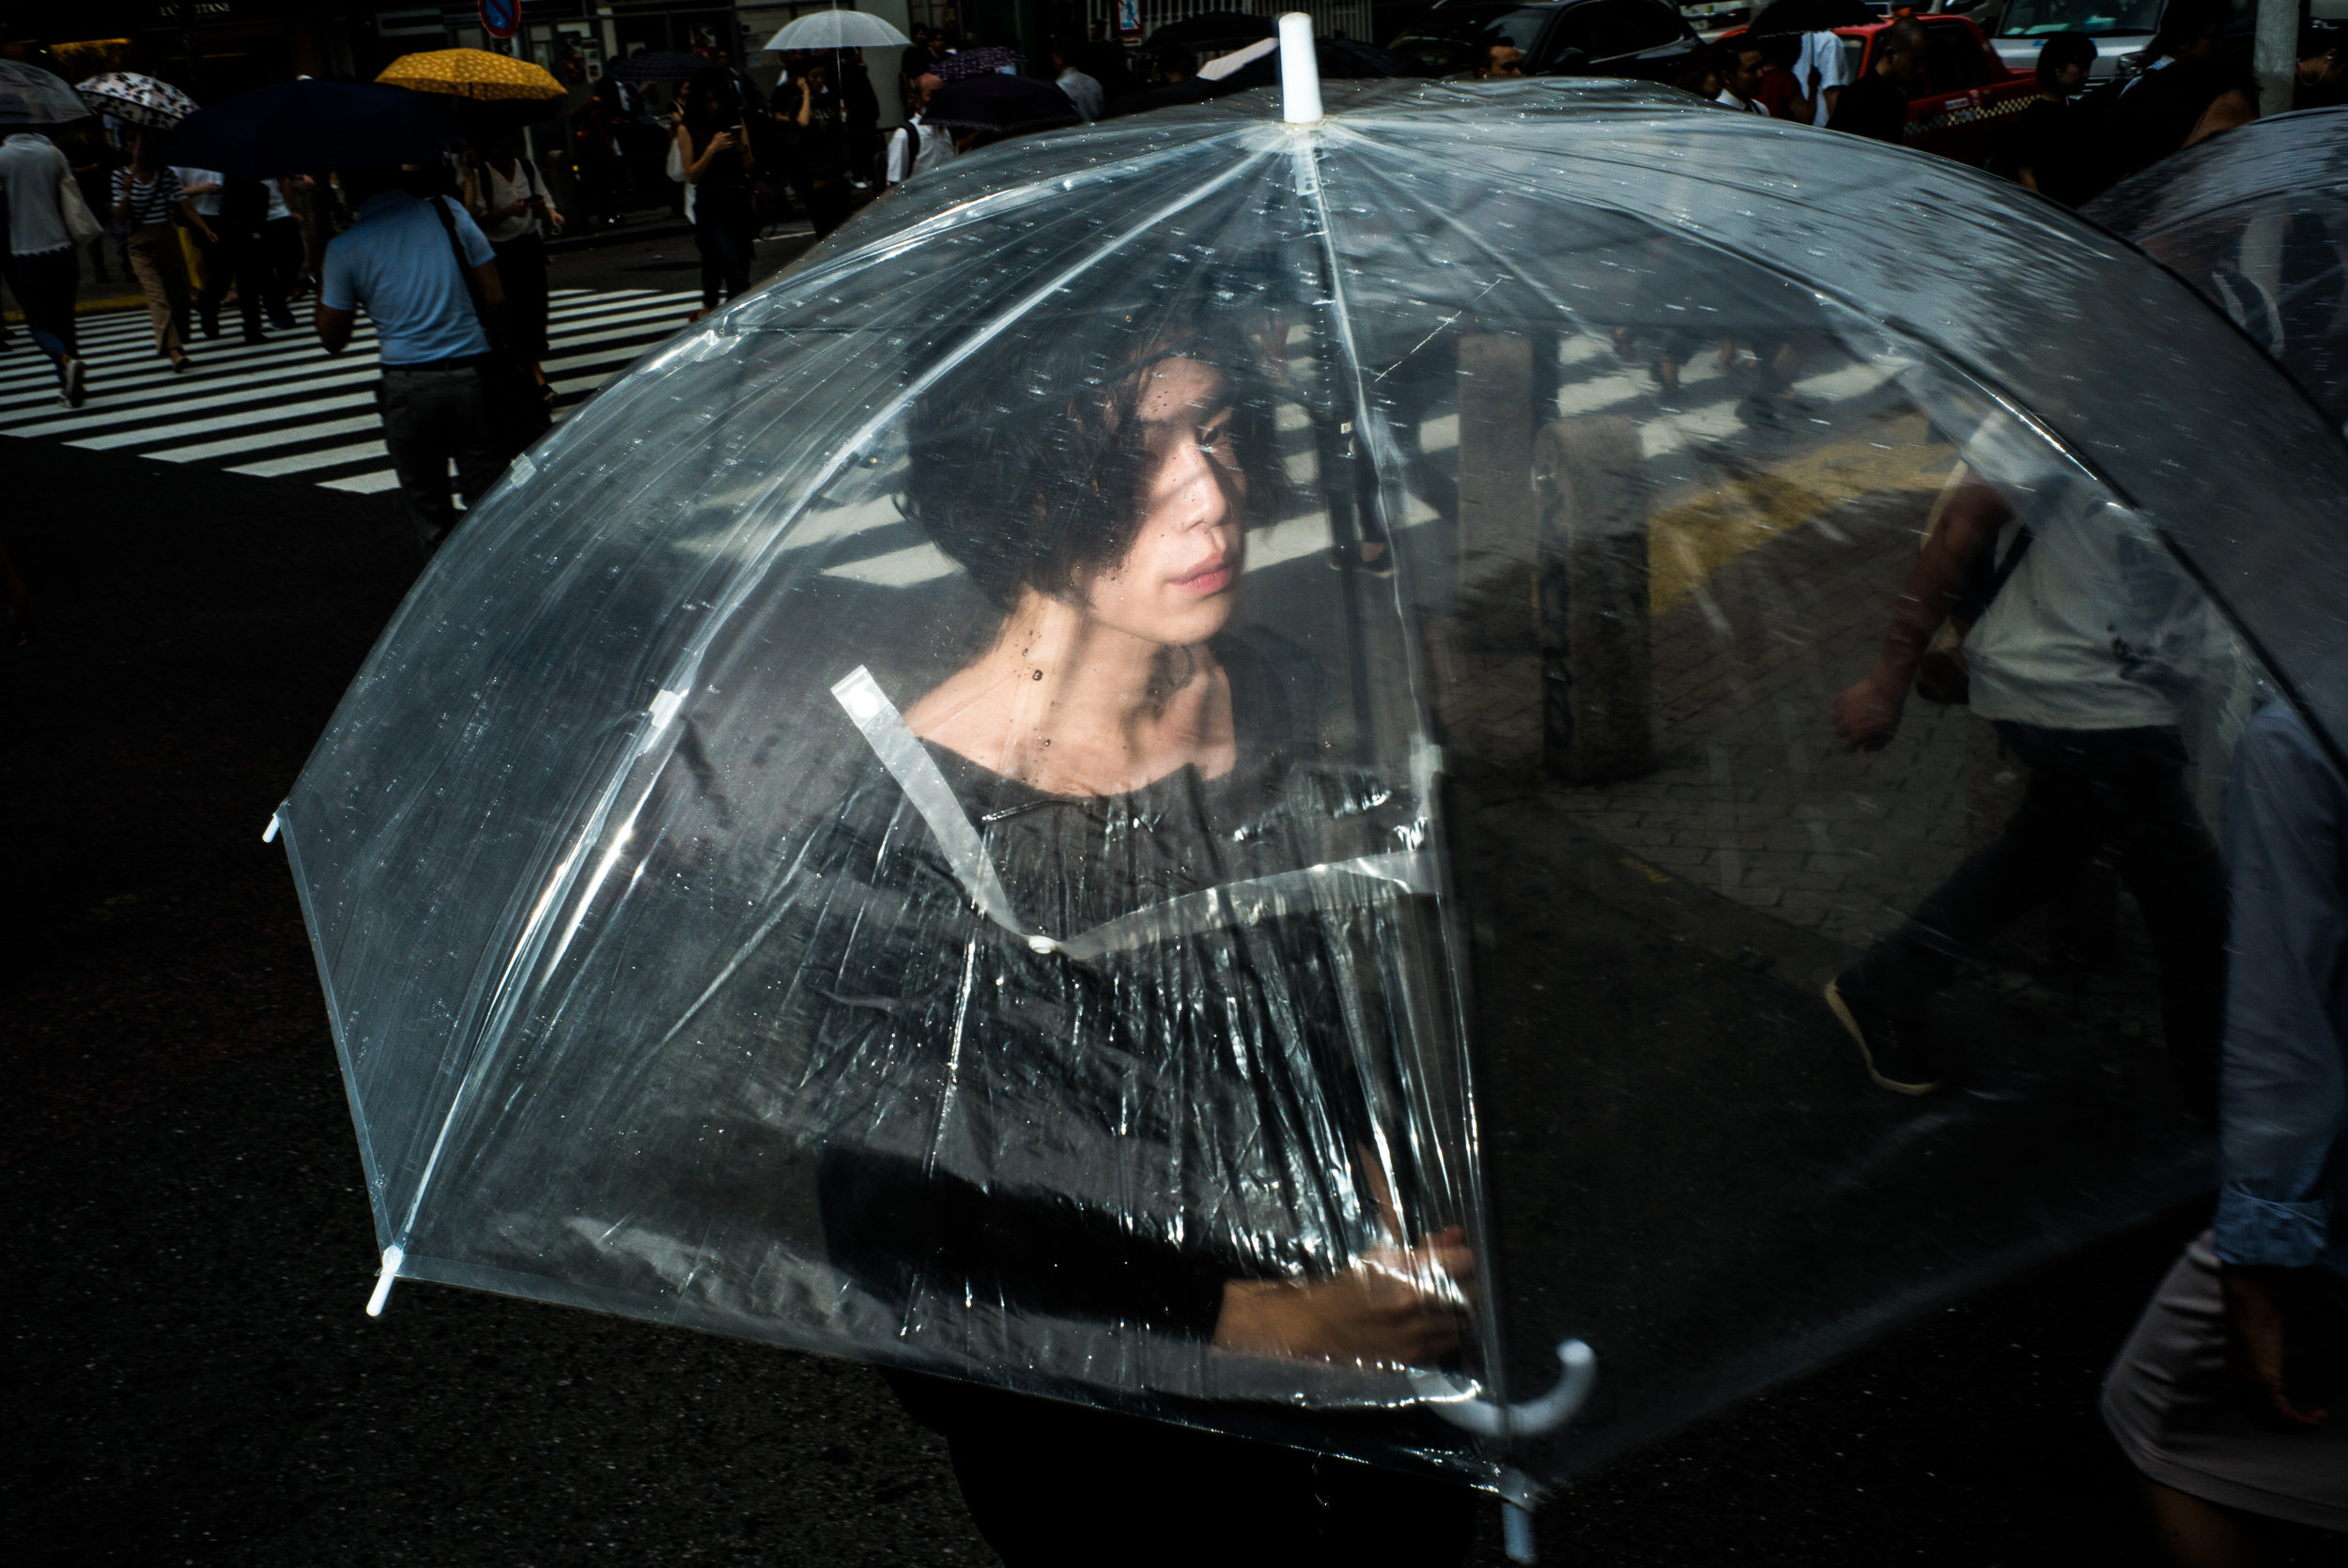 Bryce Waters_australian_street_photography_Umbrella-05.jpg.jpg